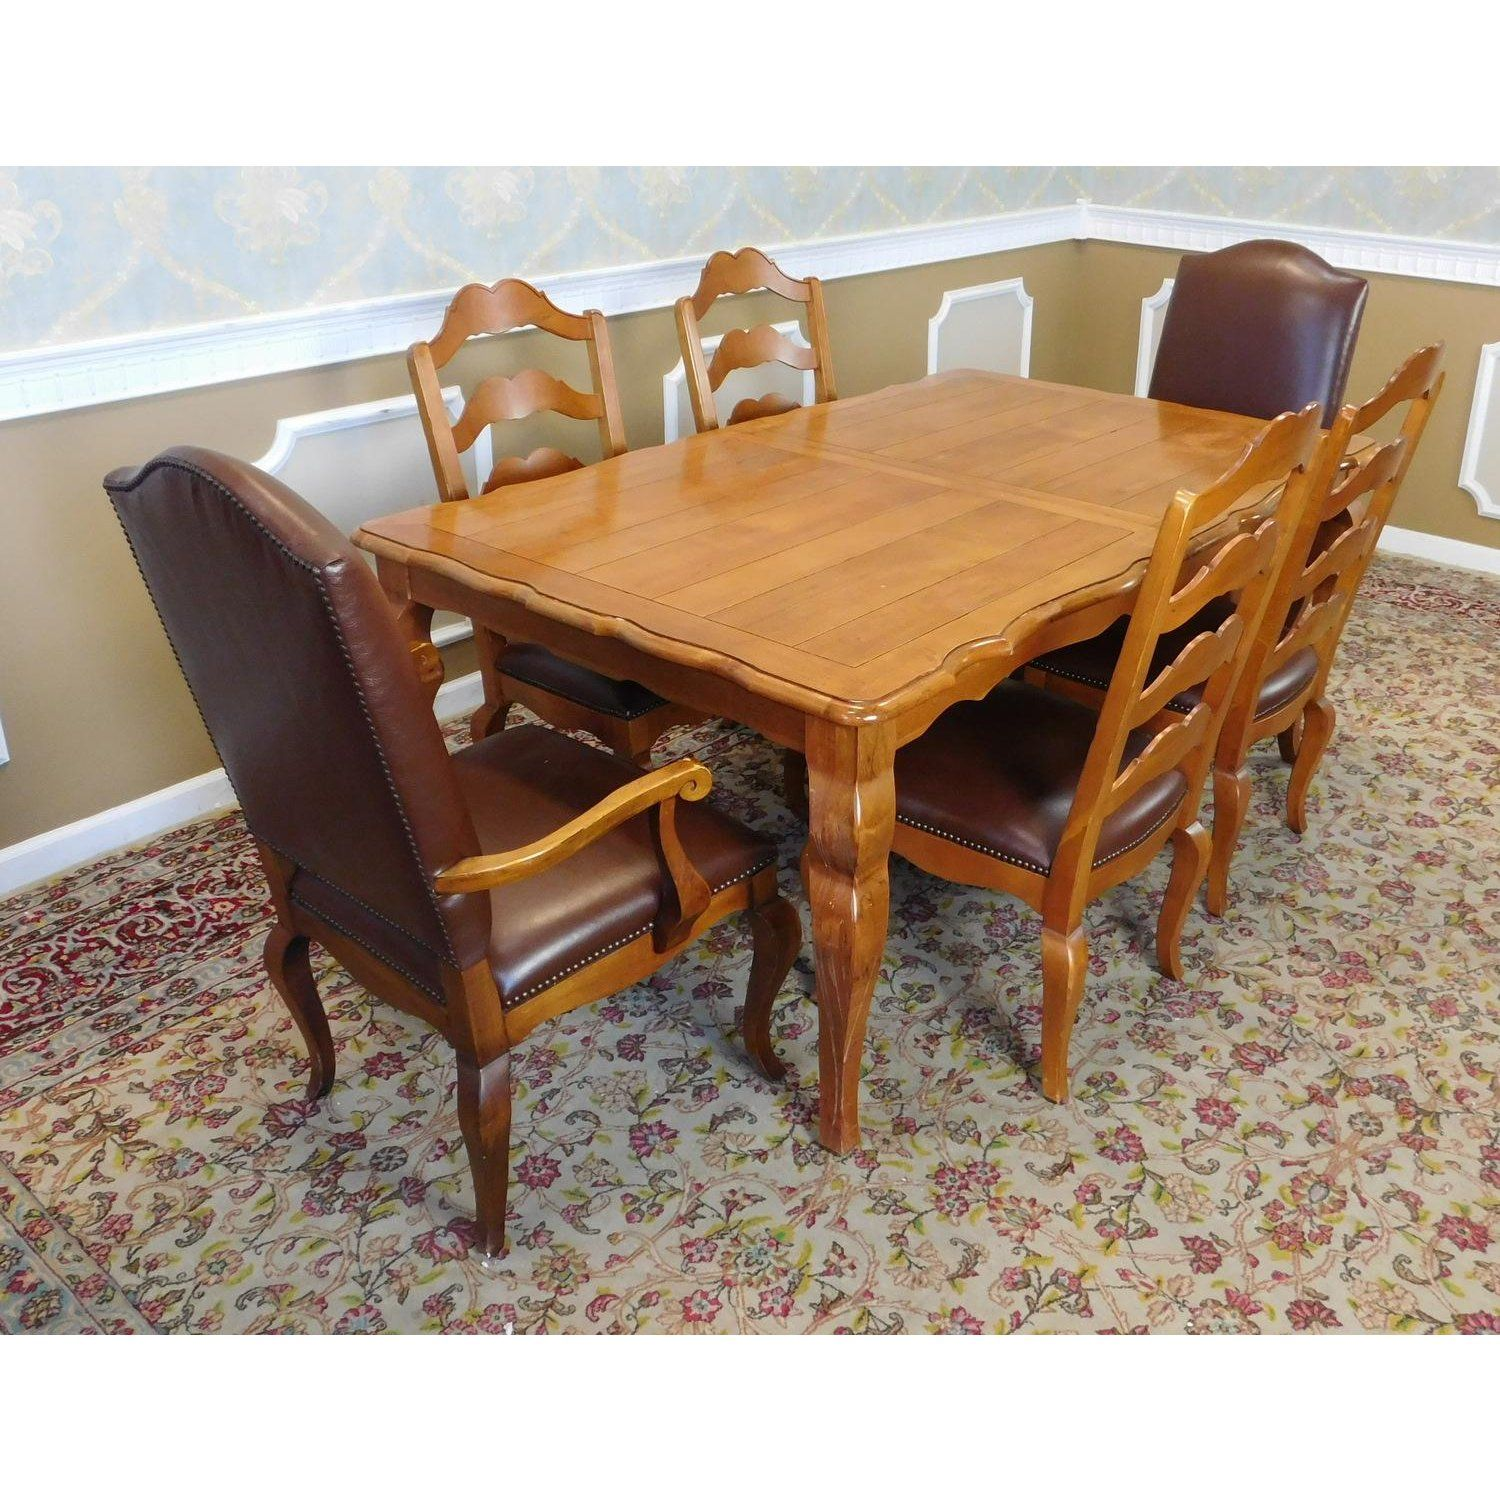 Ethan Allen Legacy Collection Dining Room Table 2 Leaves W 6 Chairs Image Of 11